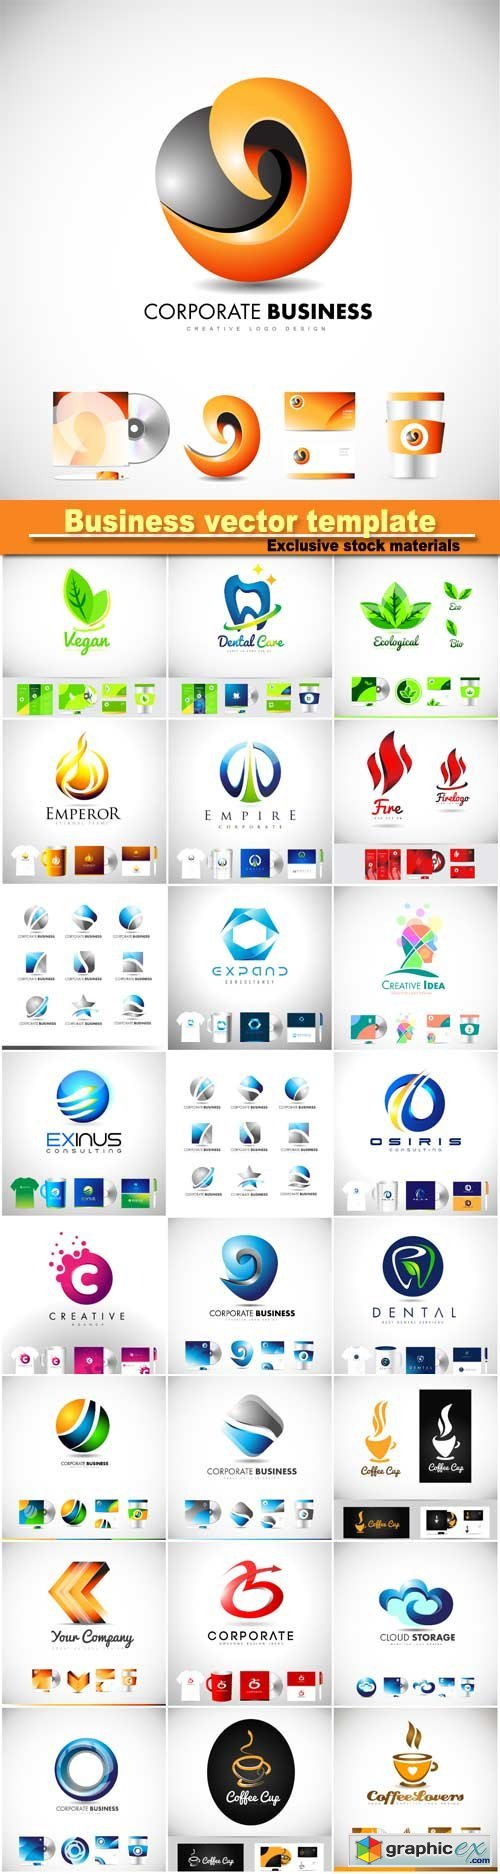 Corporate business vector logo icon